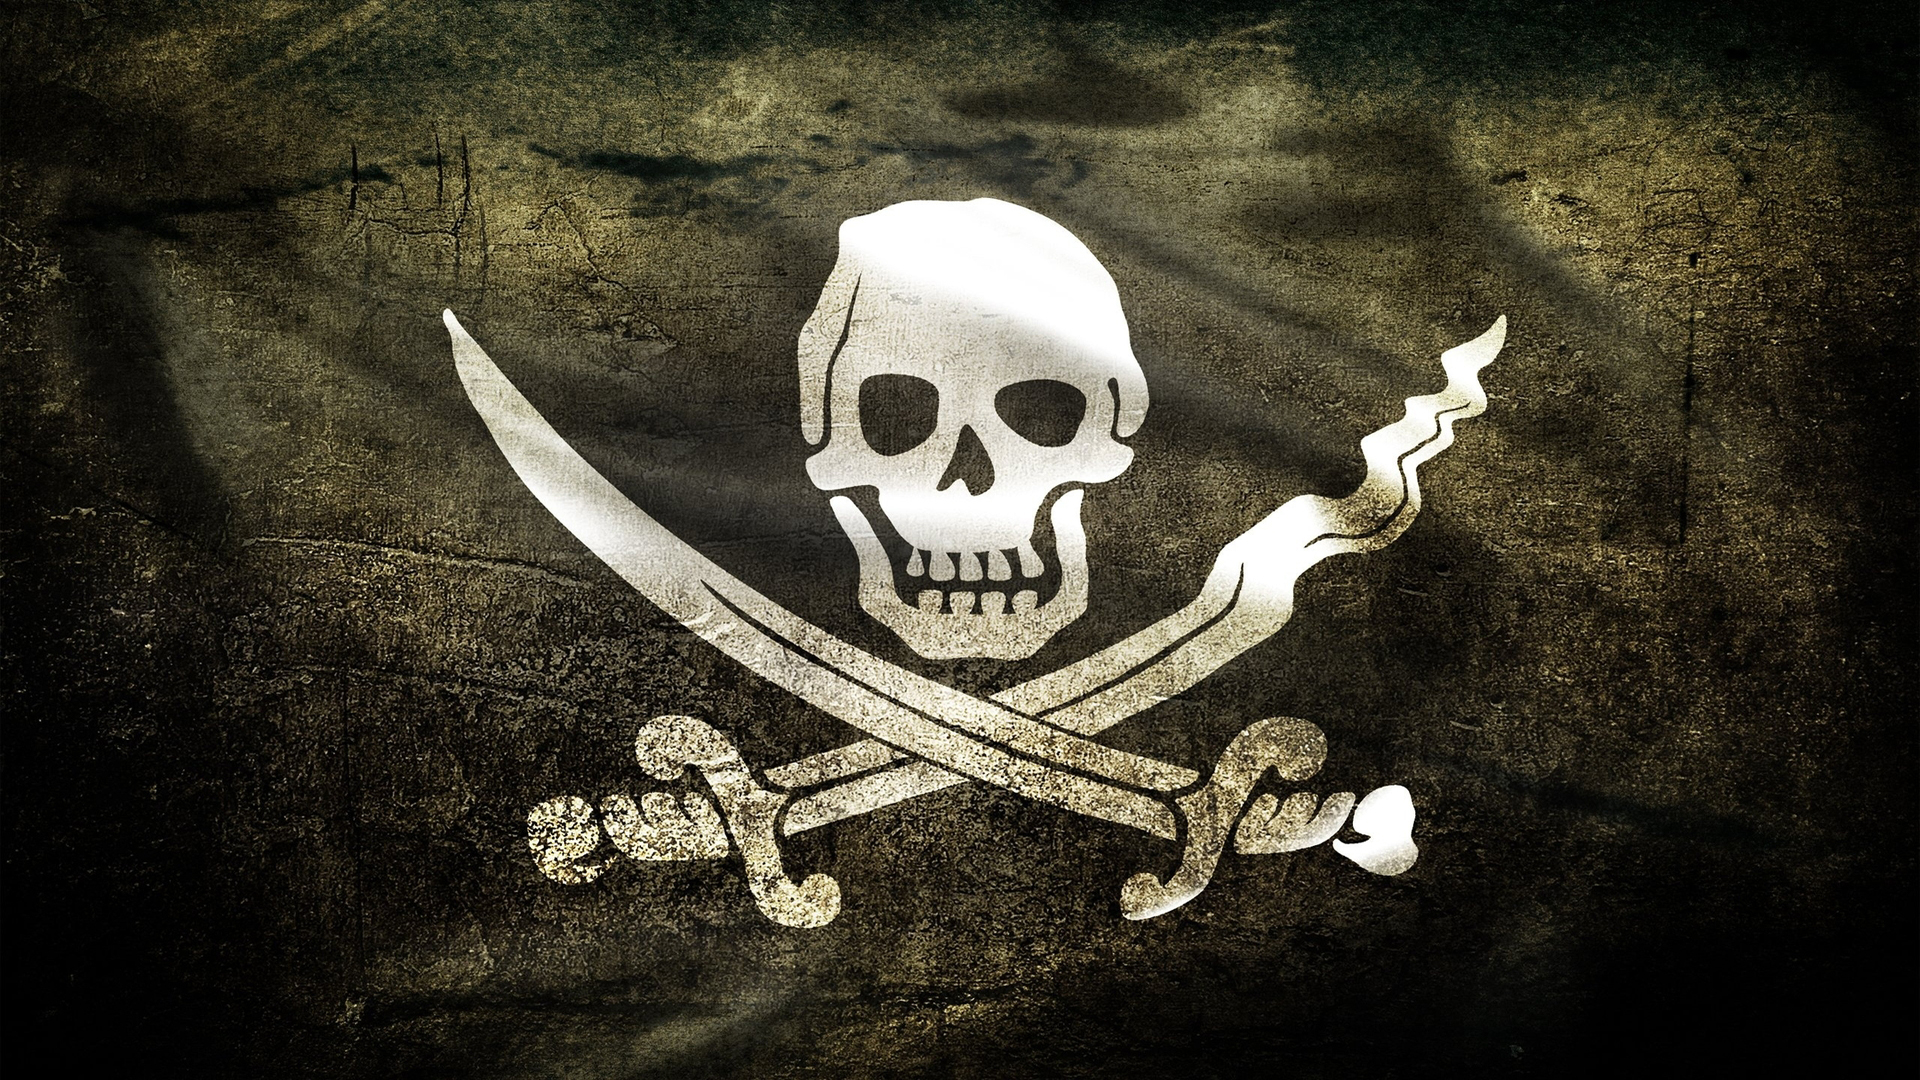 череп и кости, пиратский флаг, фон, текстура, фото, skull and bones texture background, pirate flag